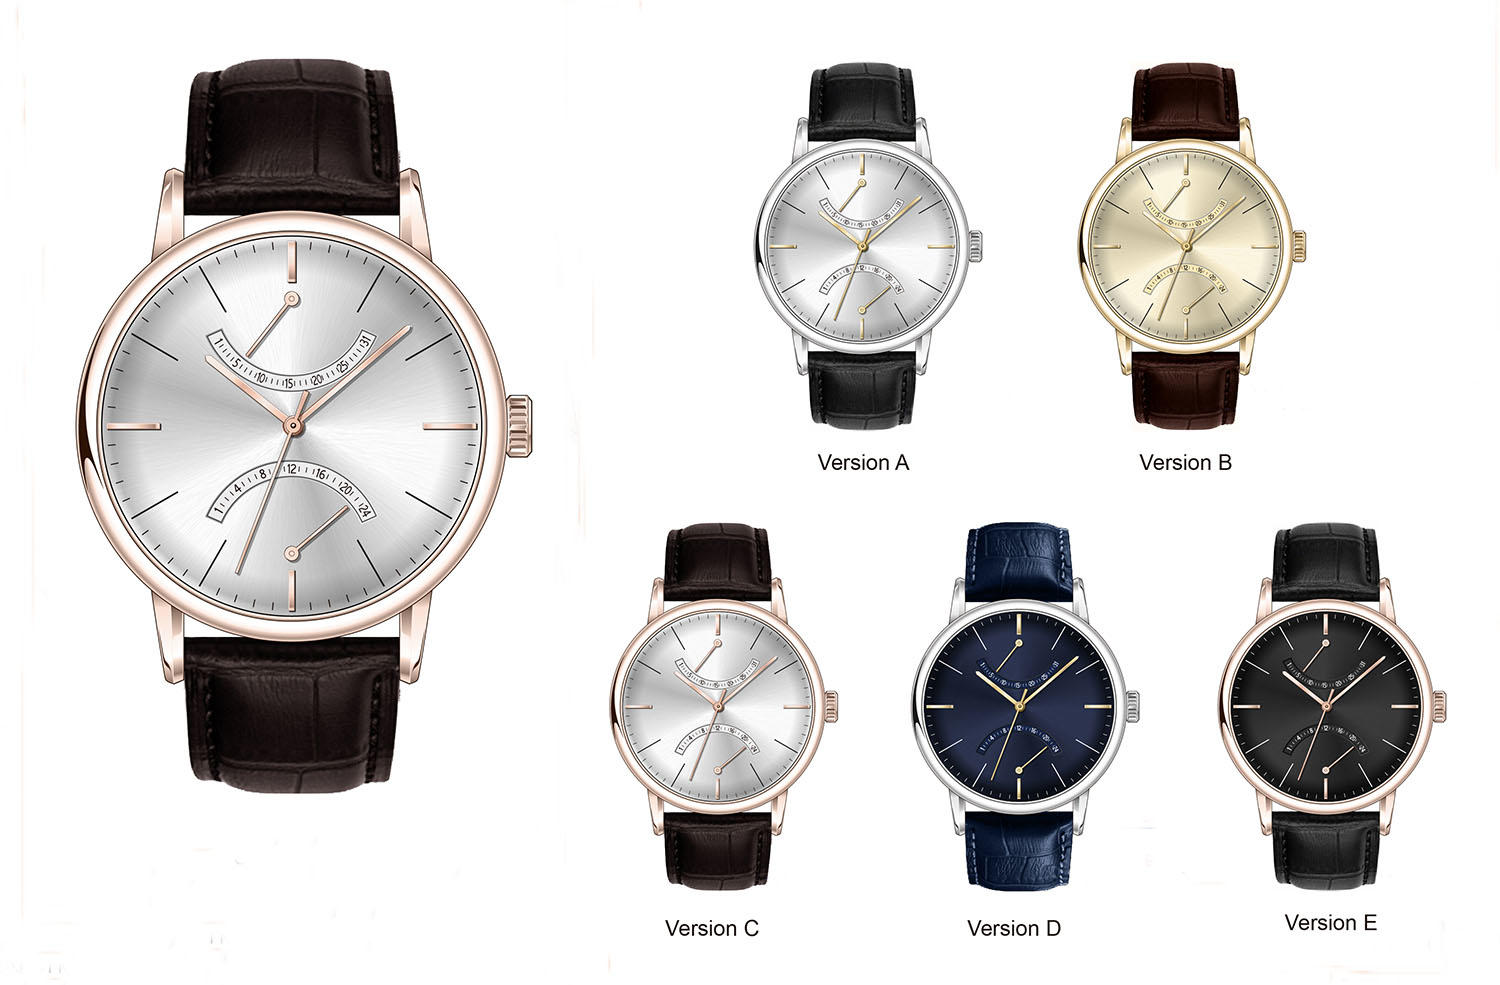 Super Time waterproof chronograph watches for men dials for date